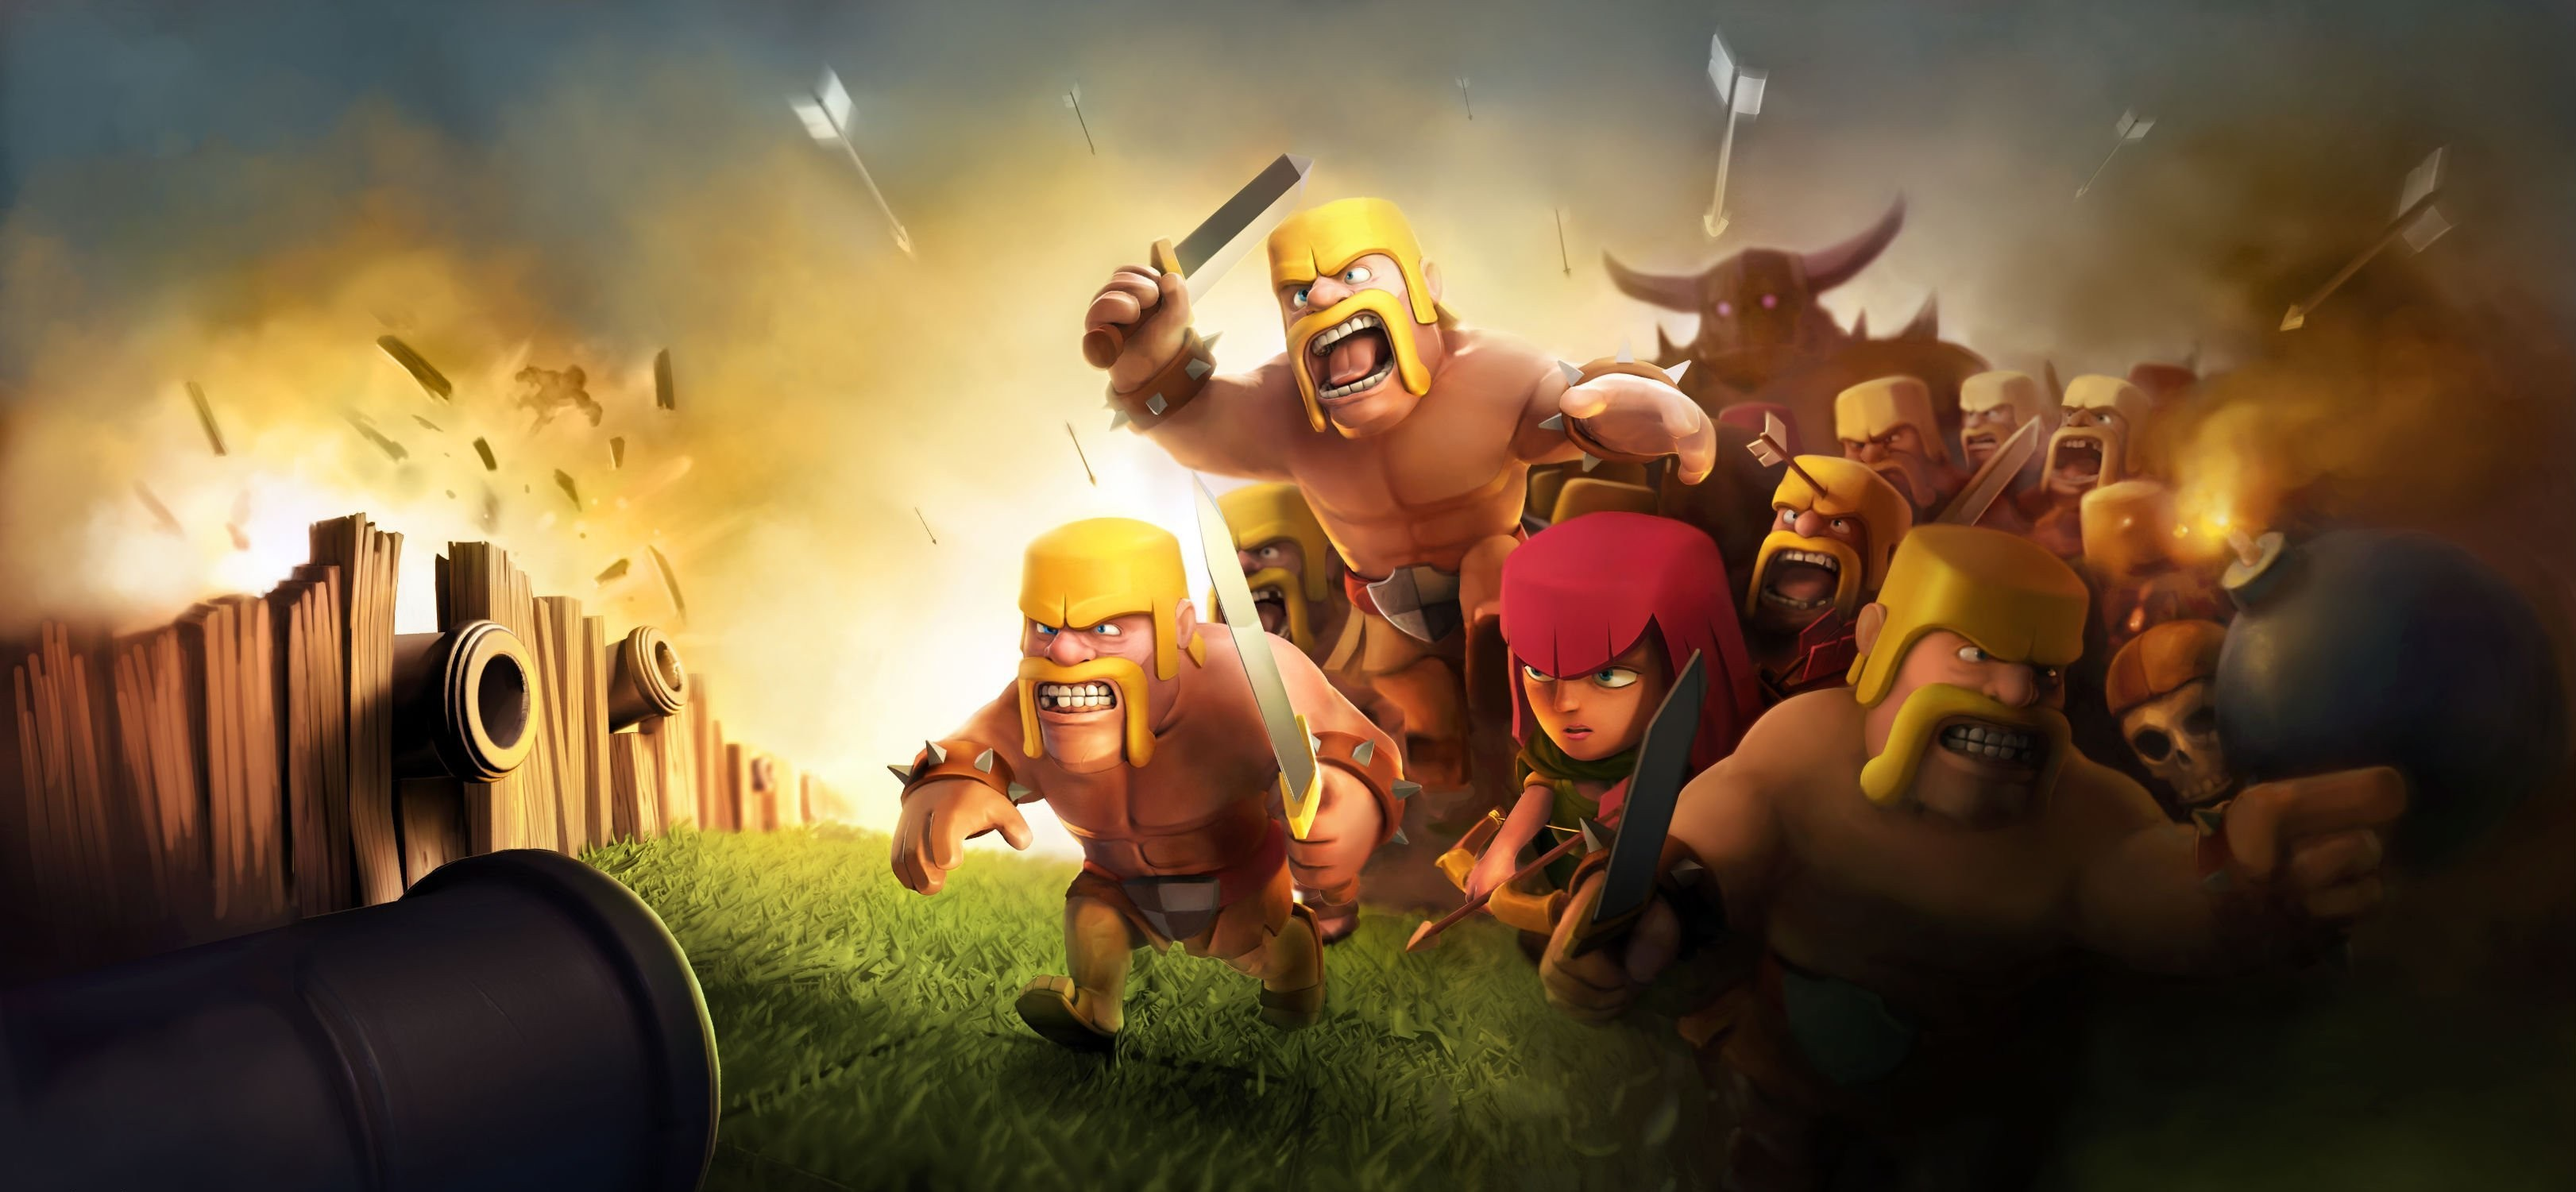 Clash Of Clans Hd Wallpaper Background Image 3243x1501 Id